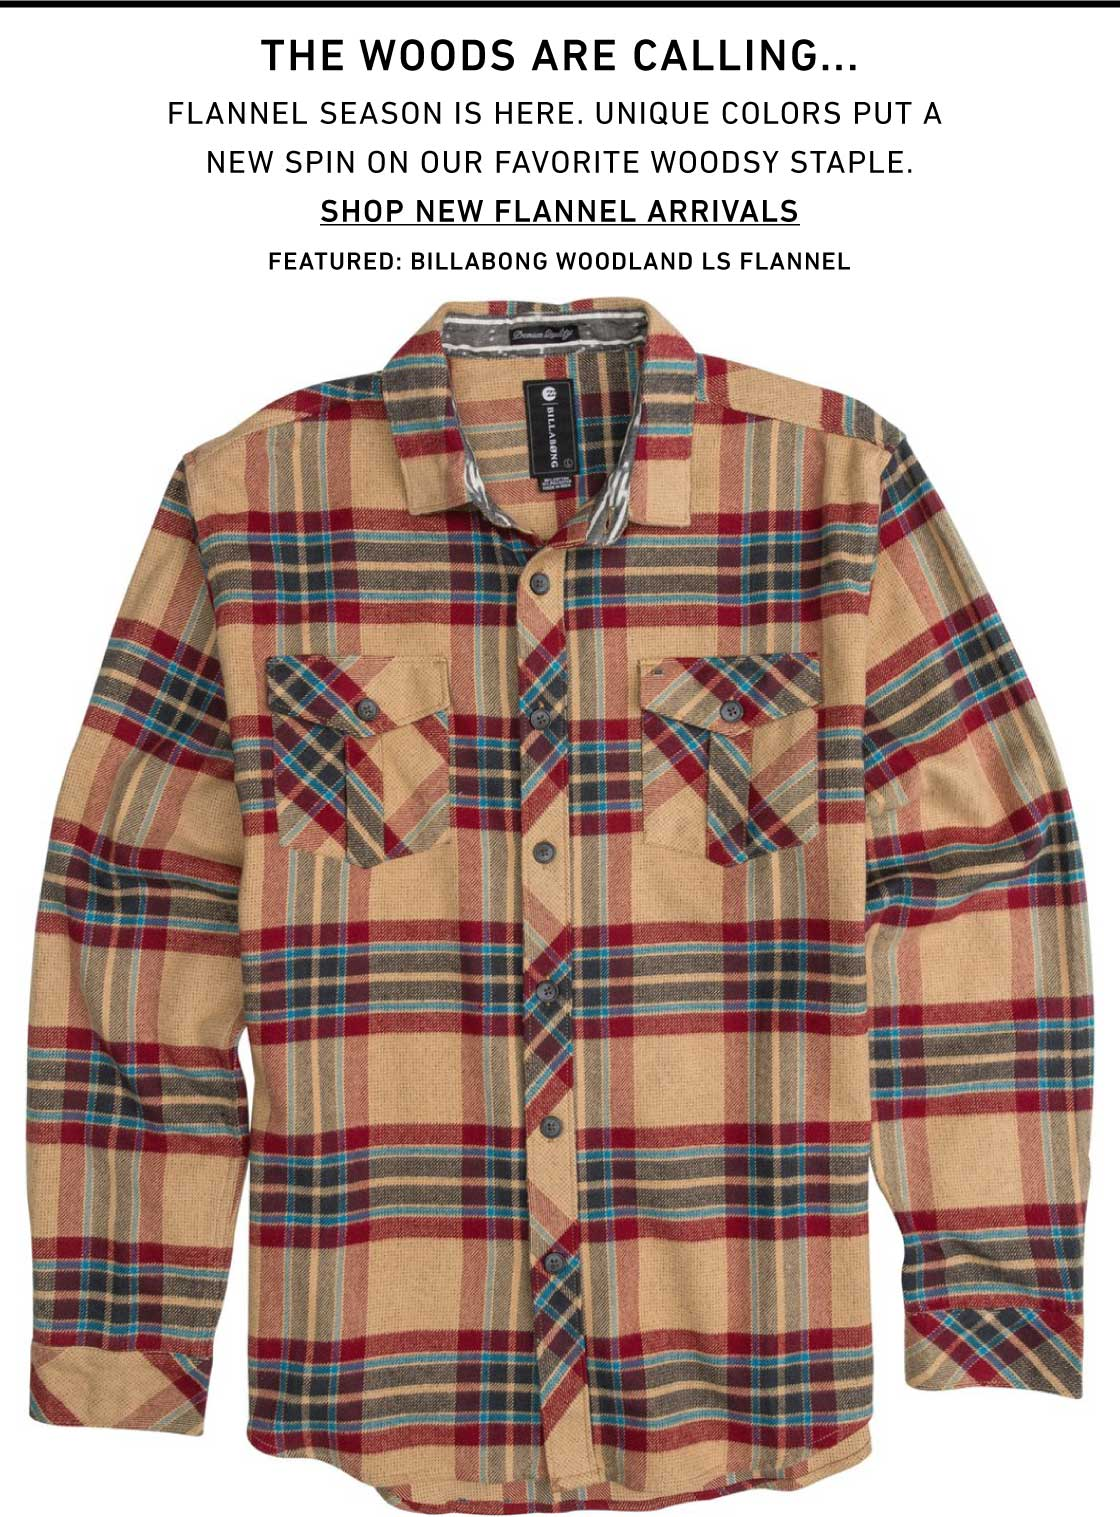 The Woods Are Calling... New Flannels